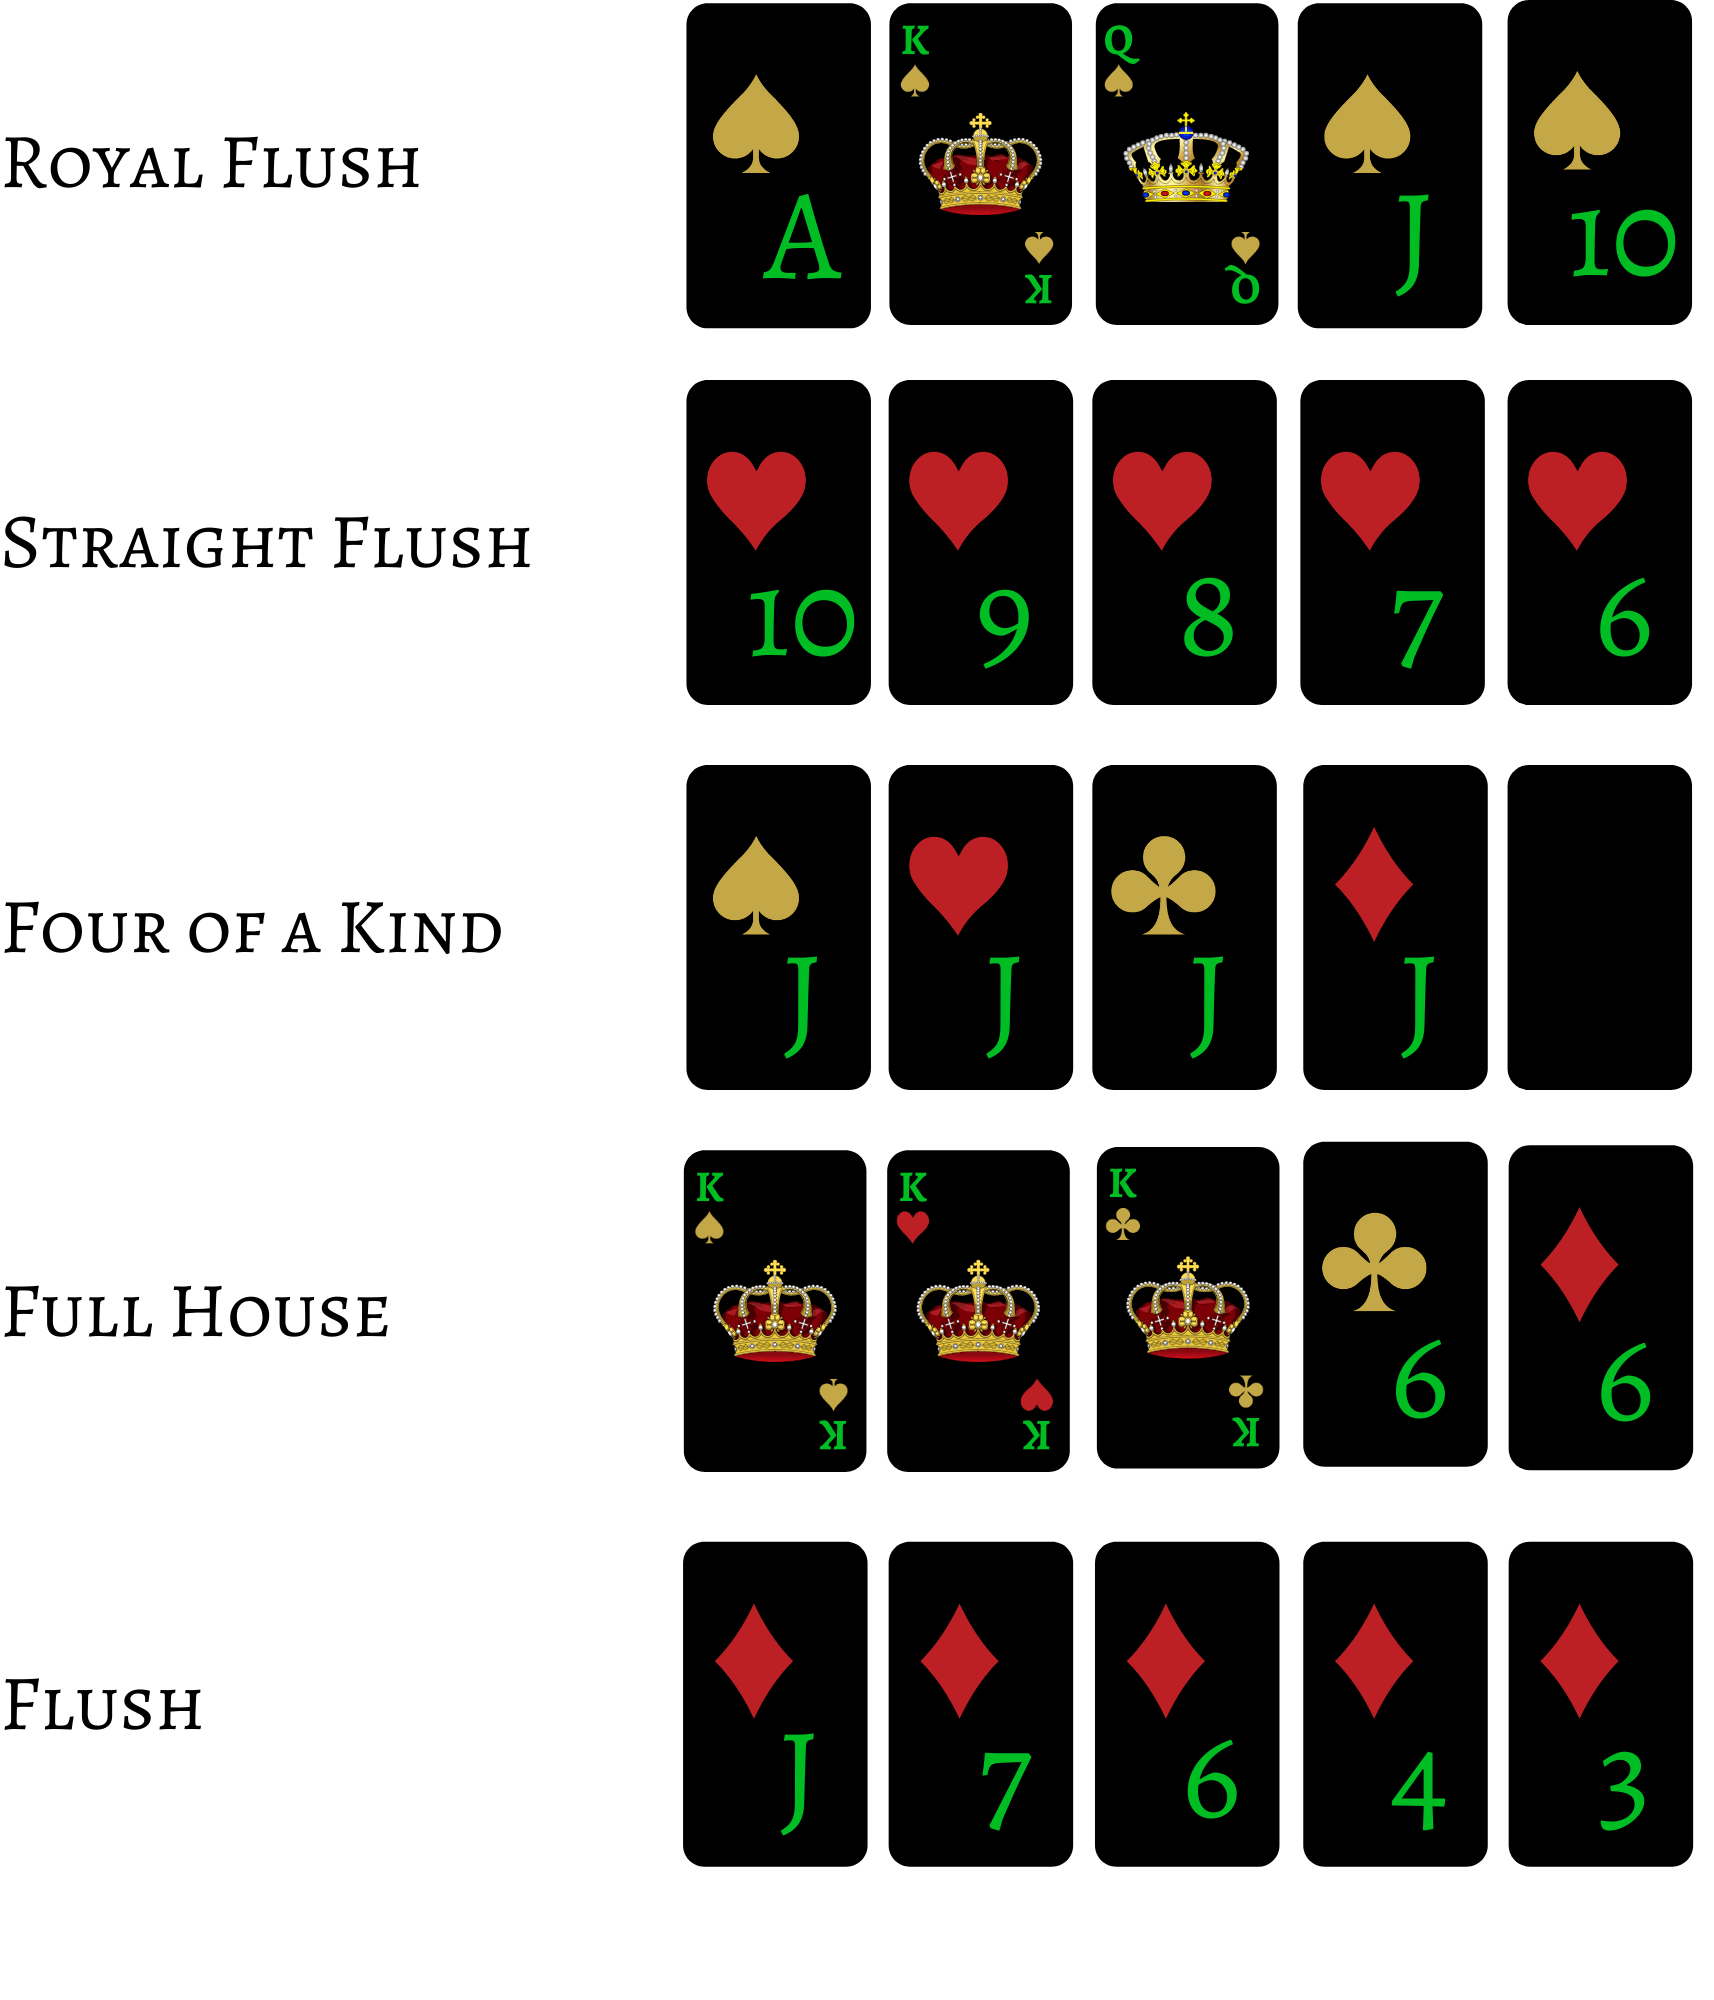 texas hold'em poker hand ranking 1